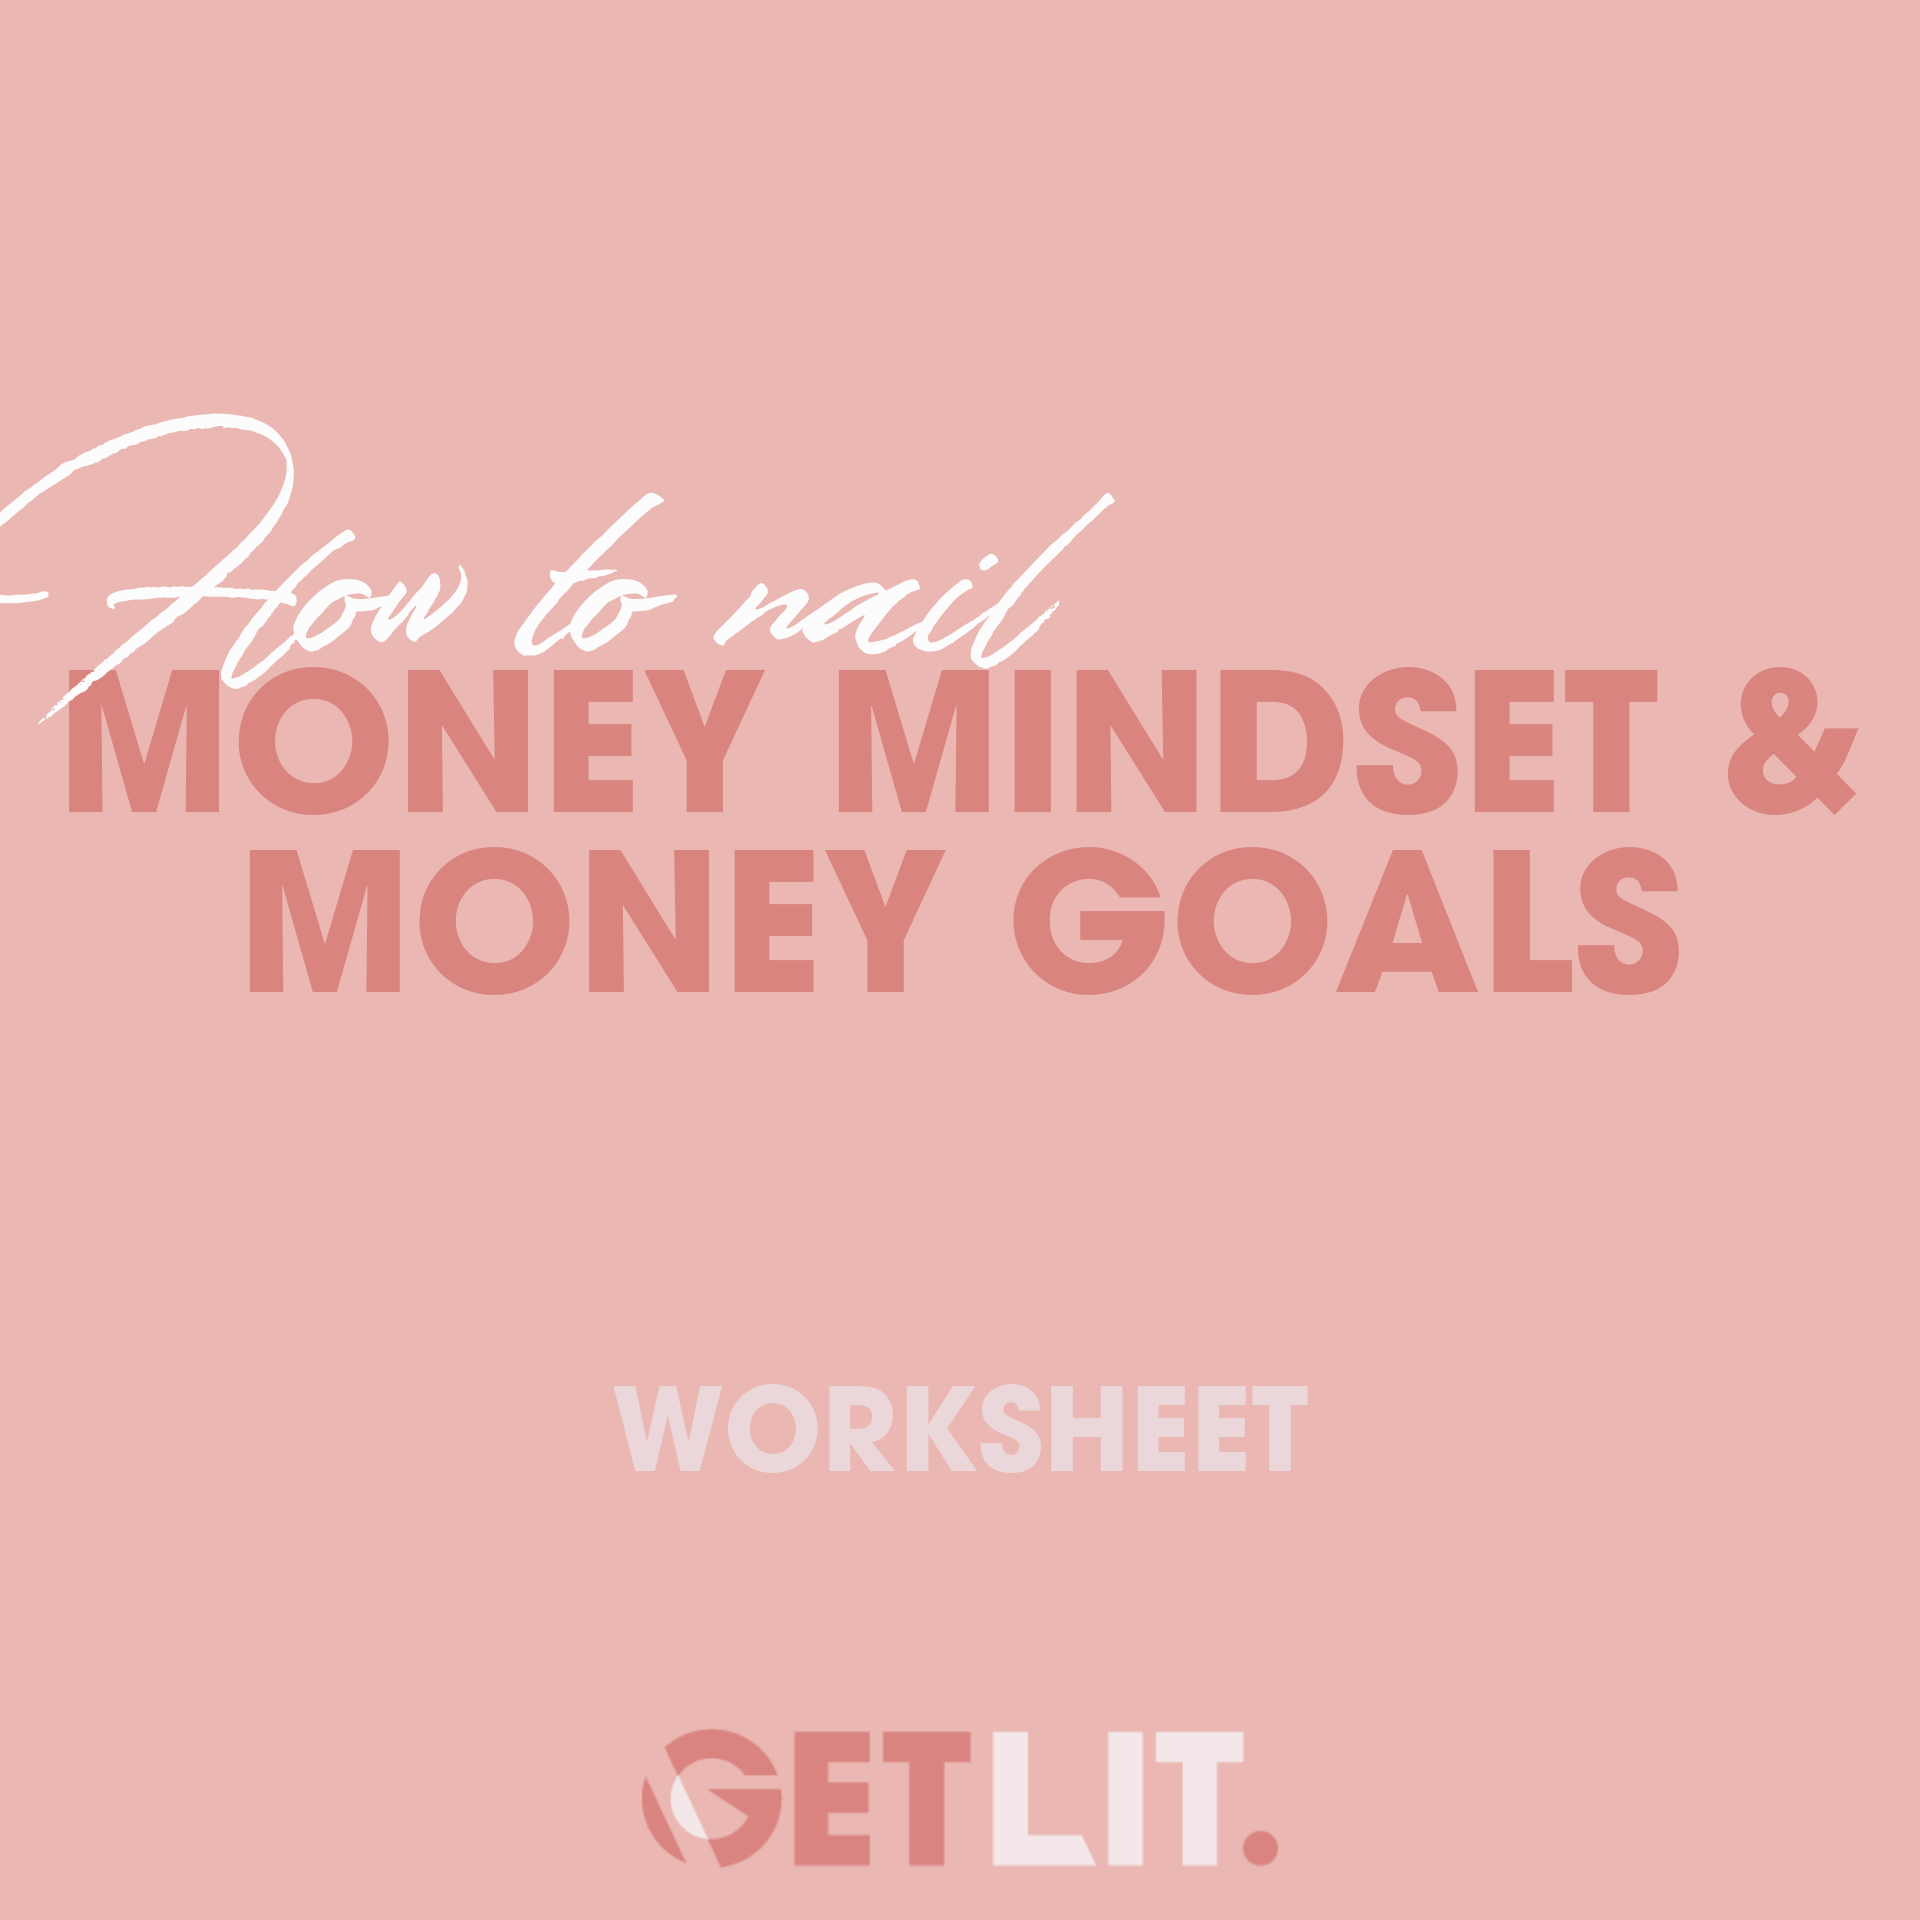 HOW TO NAIL YOUR MONEY MINDSET + GOALS - Not only is it essential to take a look at where you are with your money from a financial perspective but also a mindset one. This worksheet is where you can get super clear on how you think about money, what stories you tell yourself when it comes to money and how deserving you feel you are to earn money as this will all take a huge effect on the success of your business as you grow. Then we have the fun task of changing our story and making a new commitment + new goals for ourselves. How do you want to feel around money? How much would you like to earn? It's time to make those financial dreams come true!